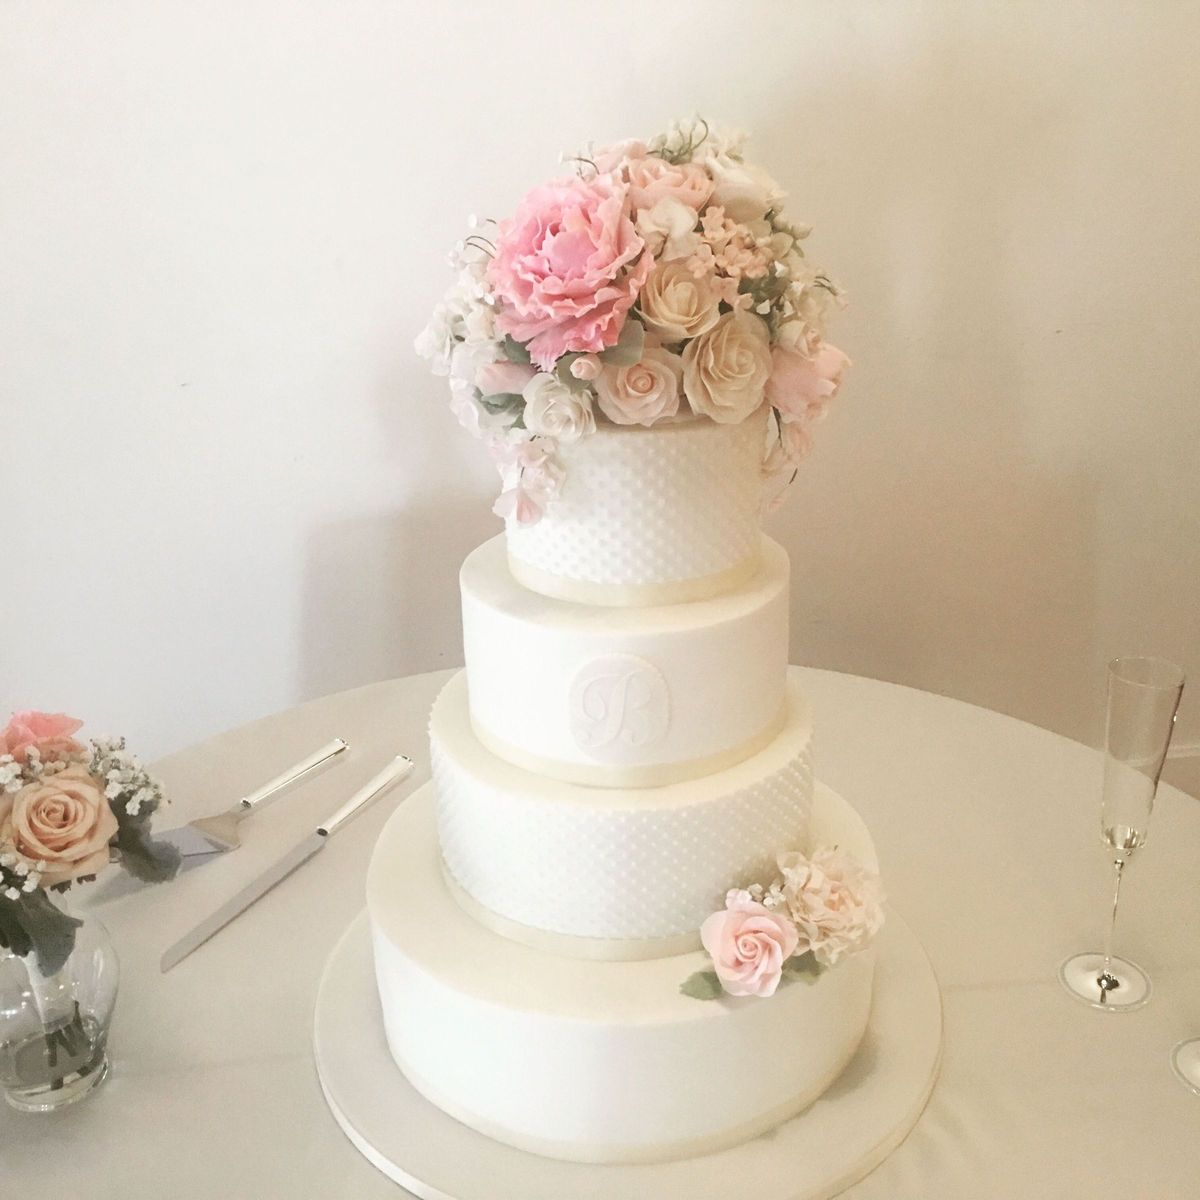 Louisville Wedding Cakes - Reviews for Cakes